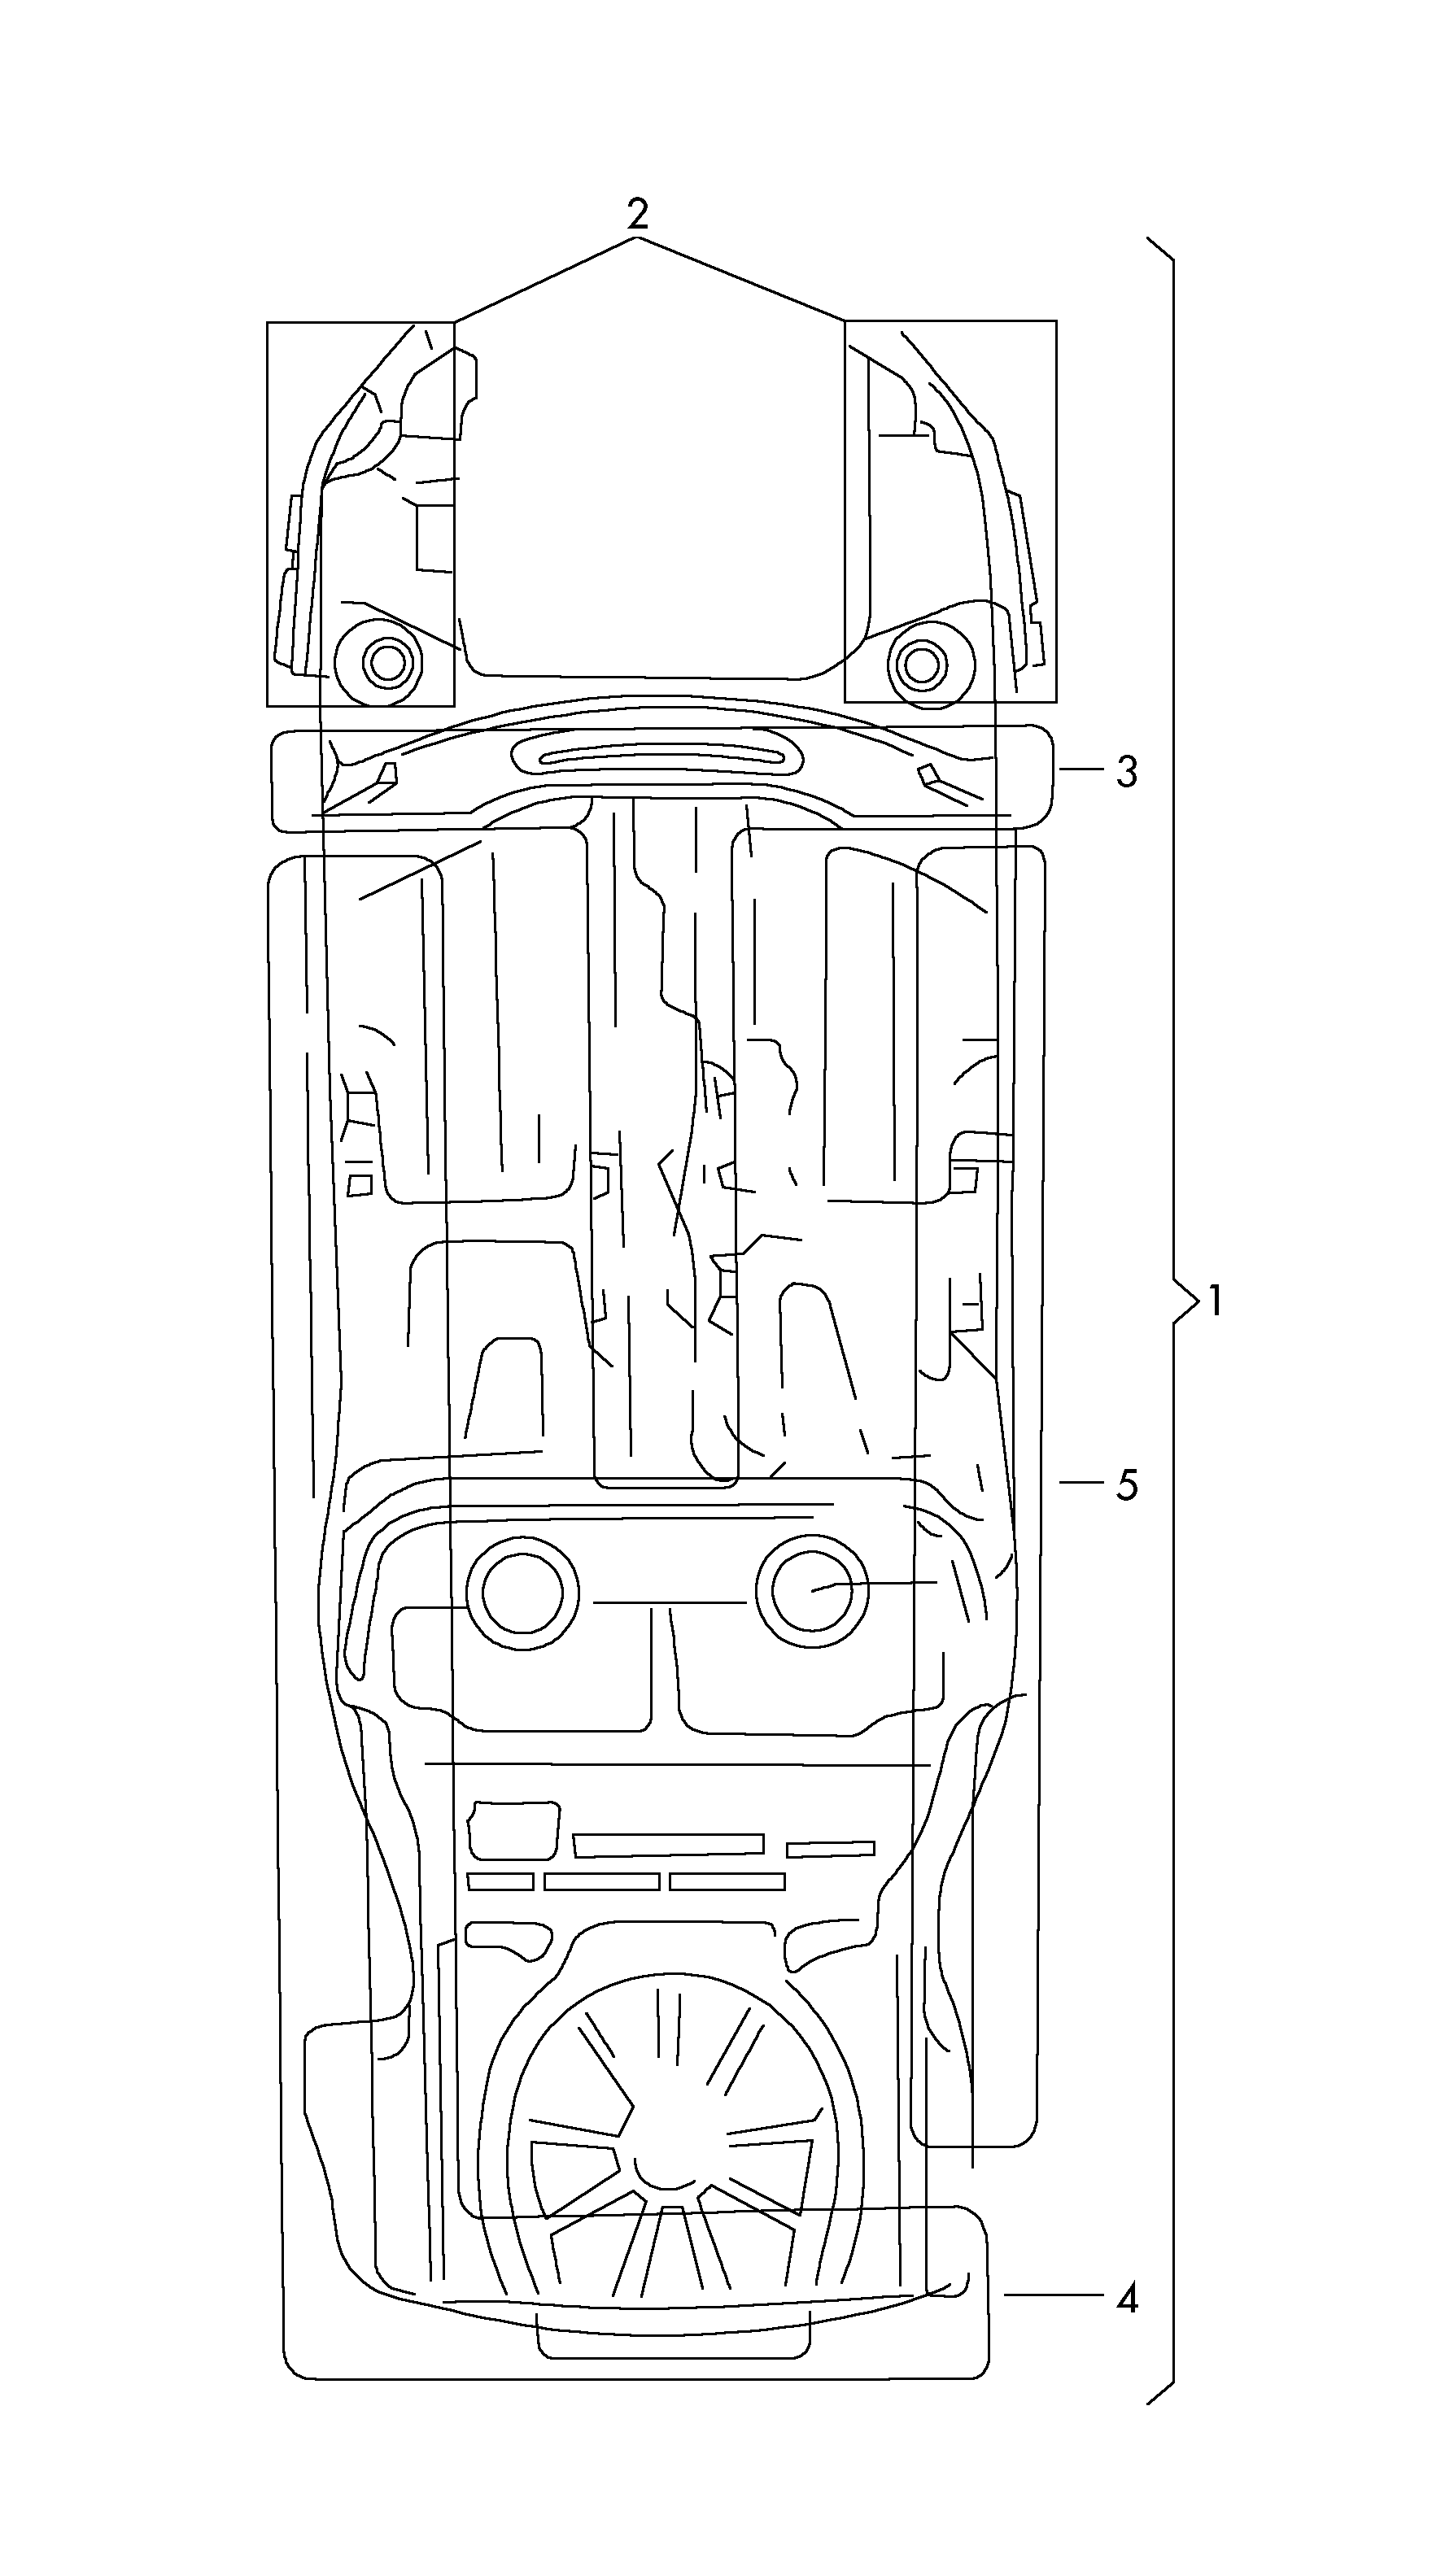 [WRG-3209] Skoda Fabia Central Locking Wiring Diagram